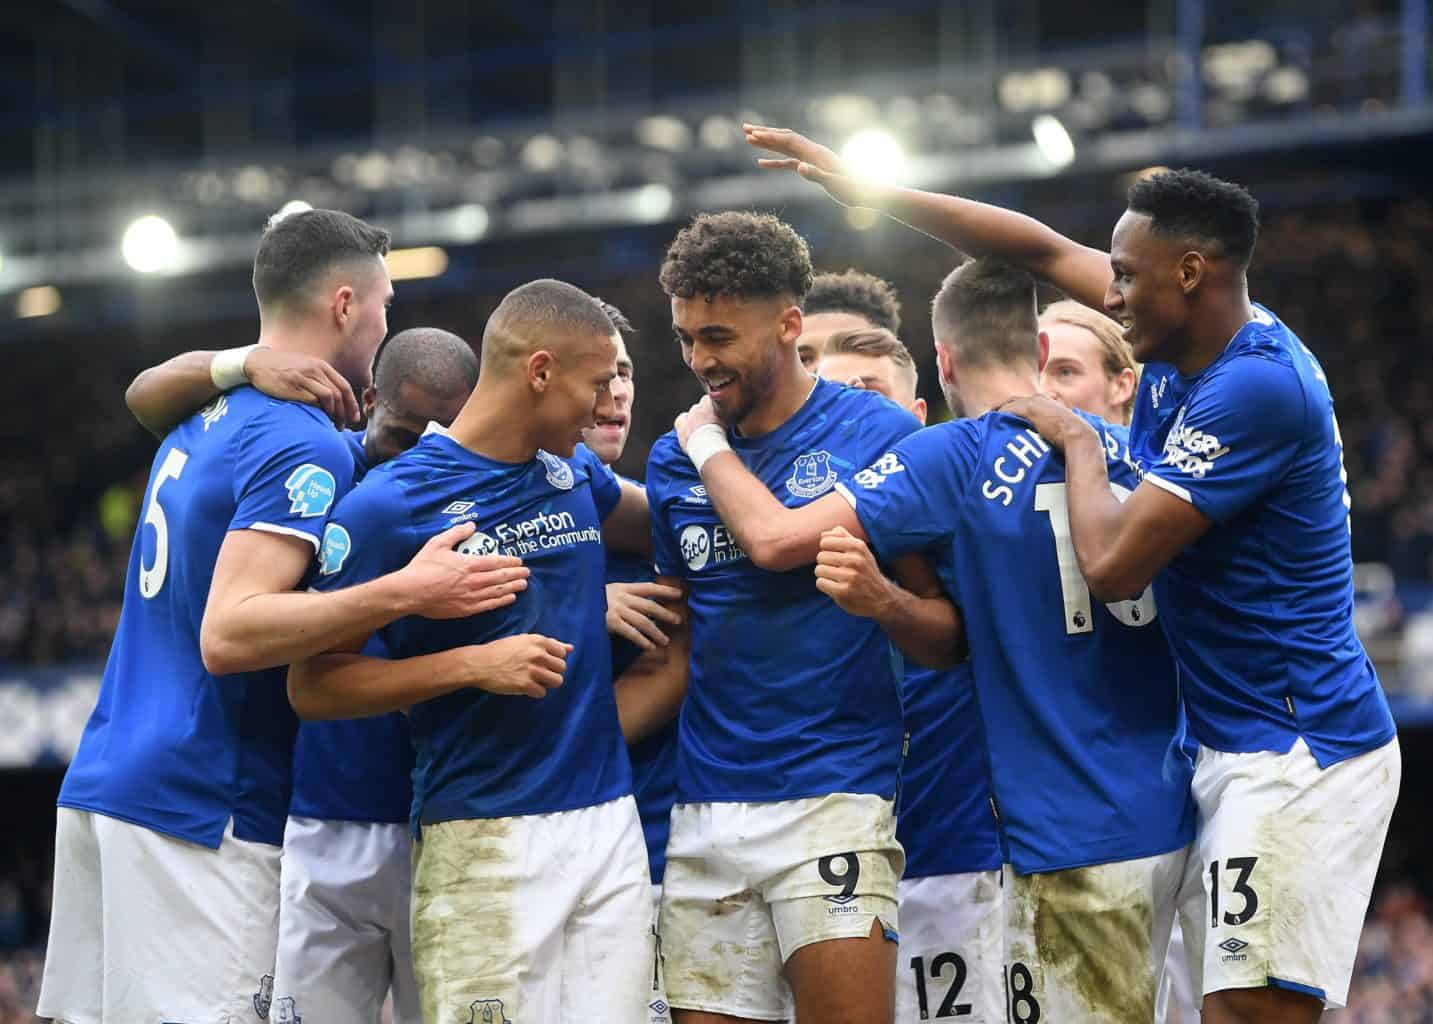 Your February Everton Player of the Month - GrandOldTeam